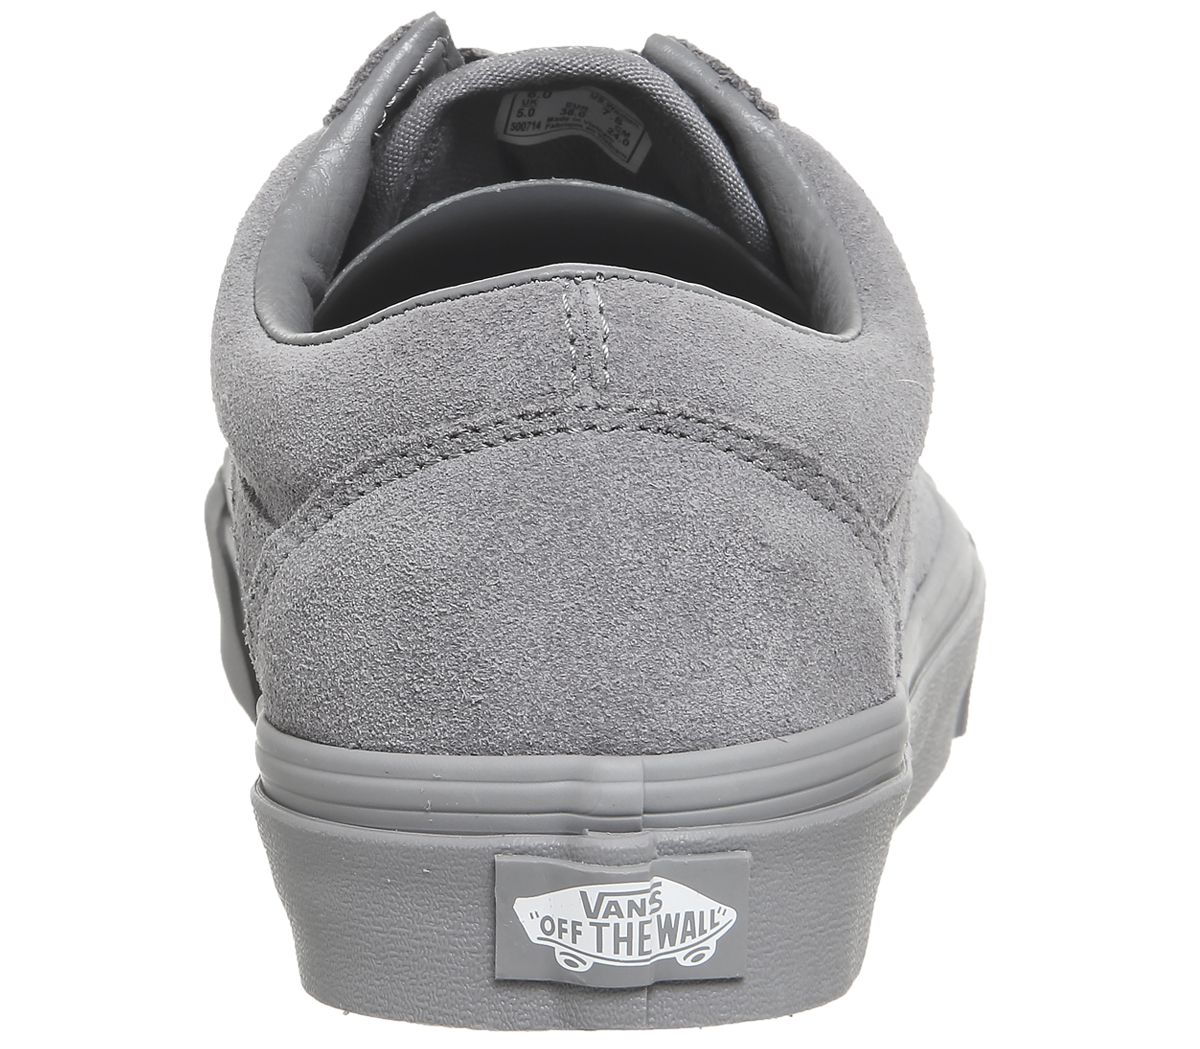 Mens Vans Old Skool Trainers FROST GREY SUEDE EXCLUSIVE Trainers ... f6929edd61e5